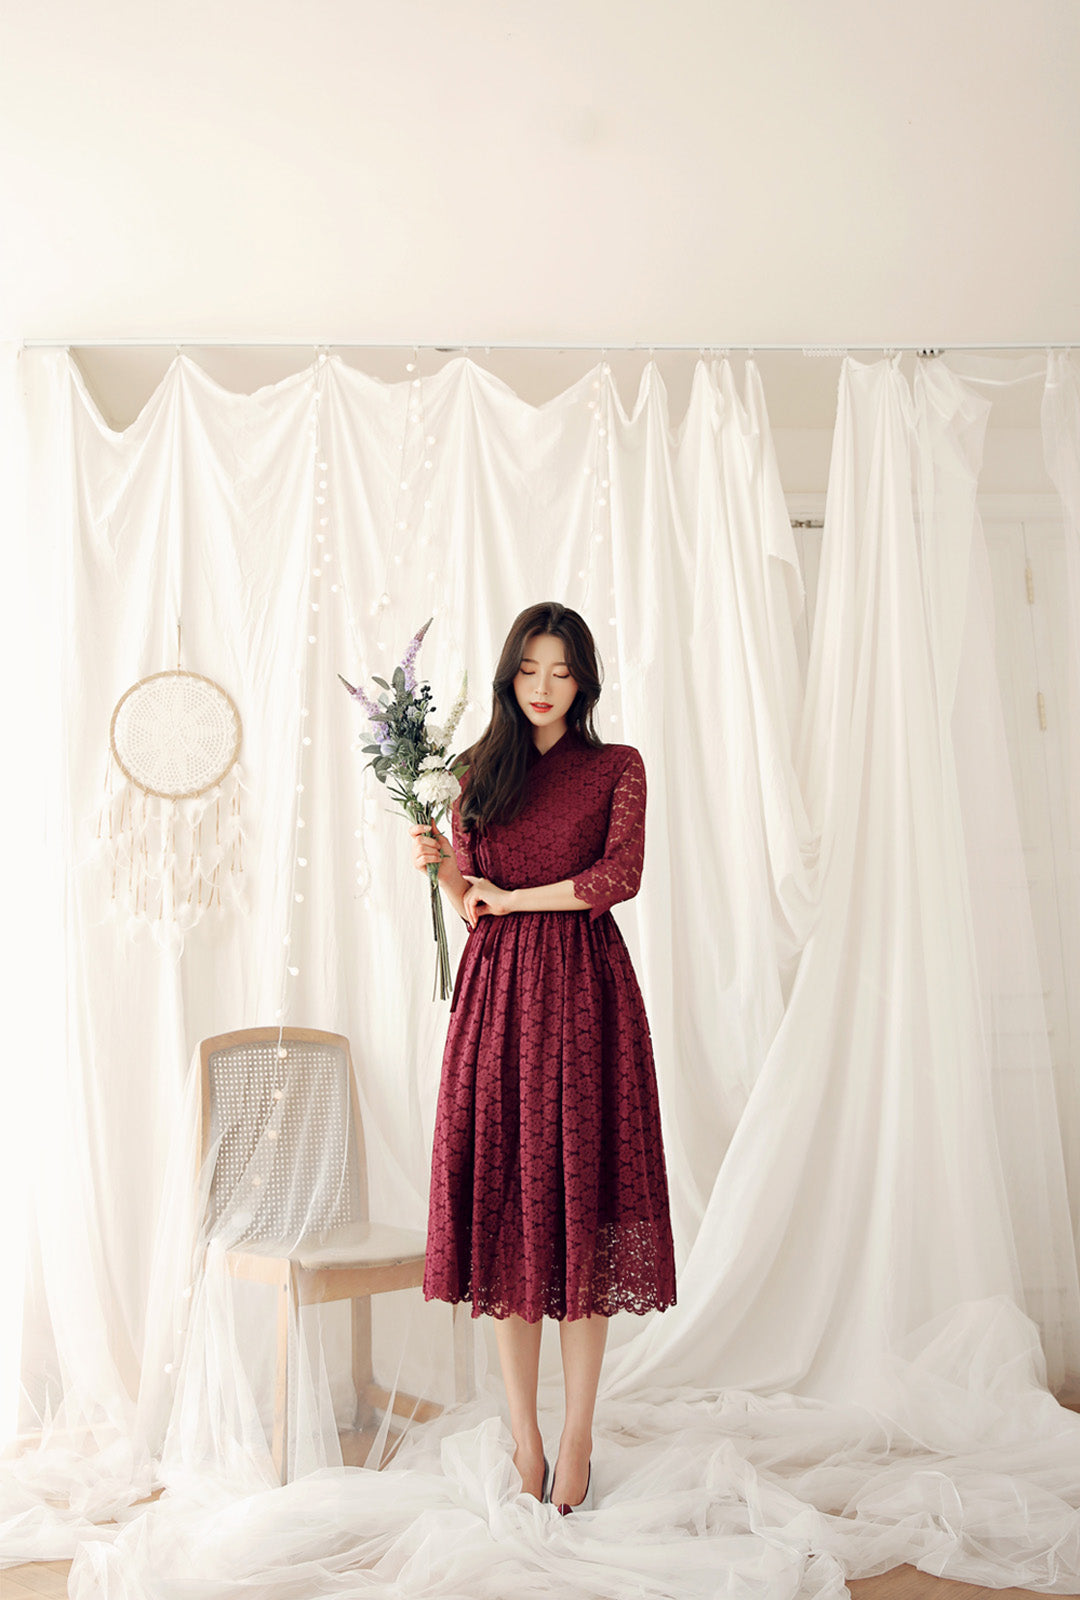 You'll feel the love from the world when people stop to compliment you in this brick-red flower modern hanbok dress.